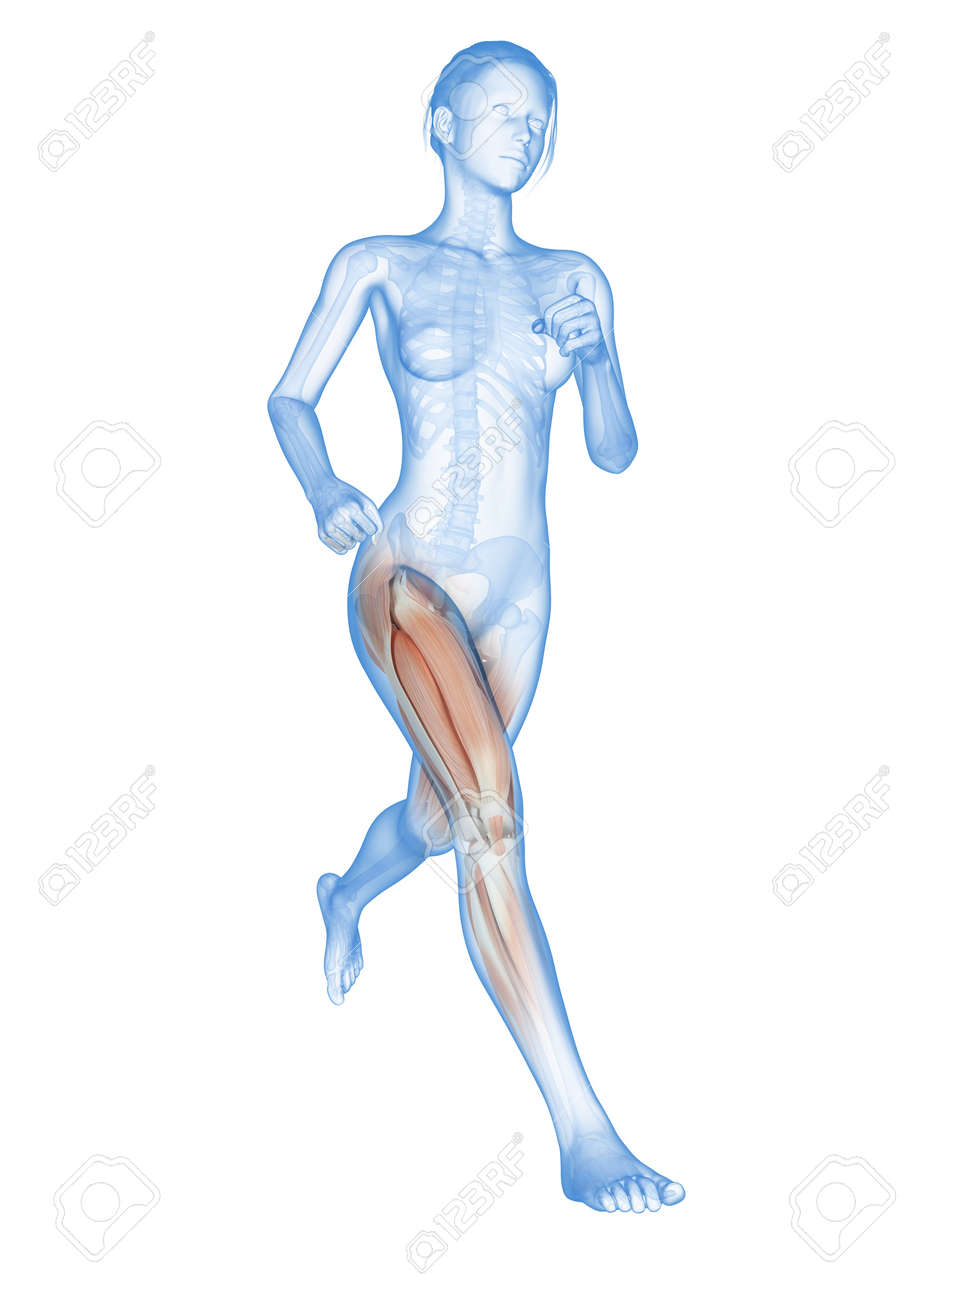 Woman Running - Visible Anatomy Of The Leg Muscles Stock Photo ...